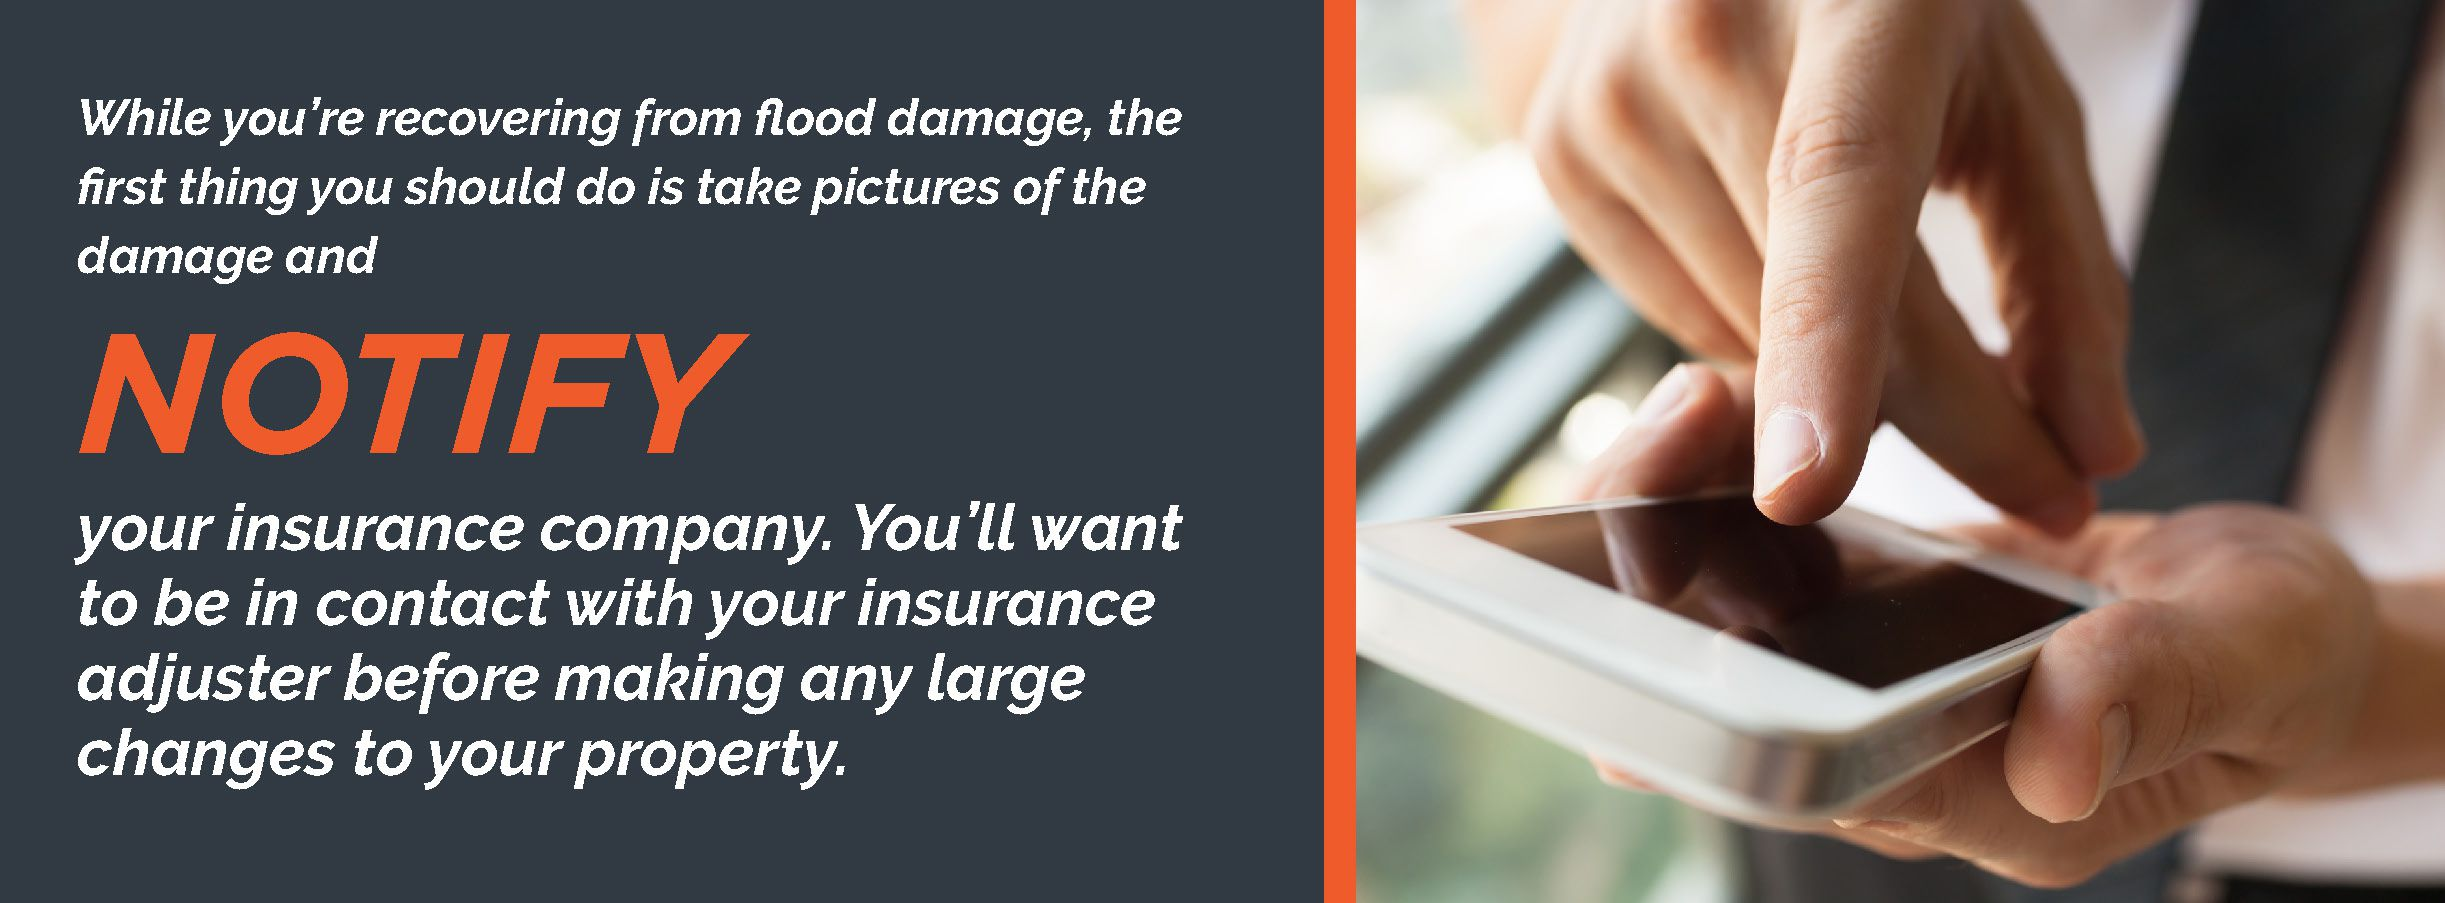 Notify your insurance company of water damage